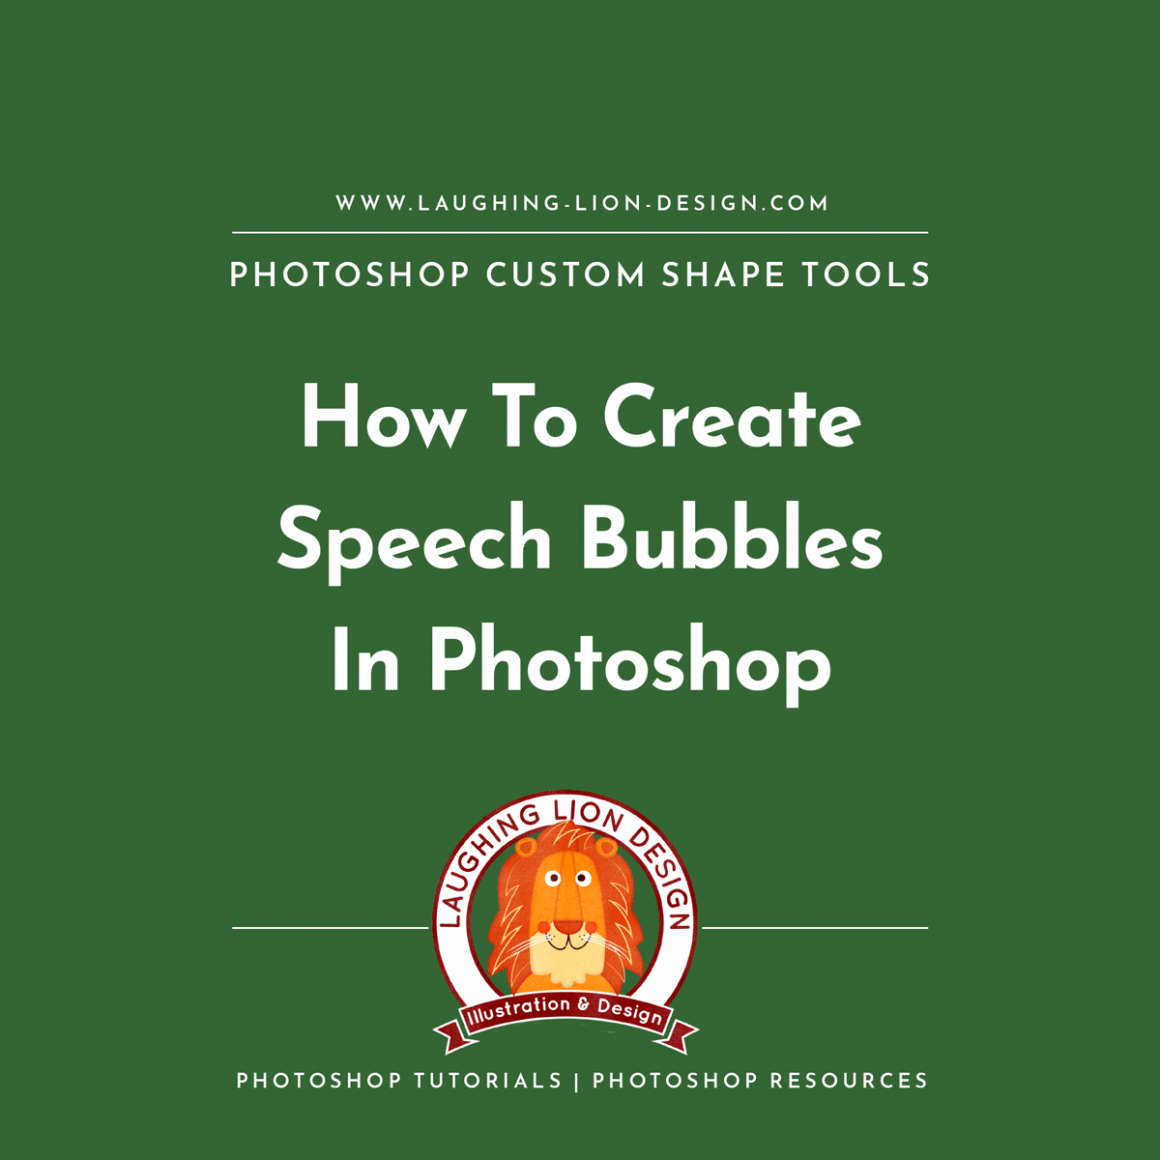 How-To-Make-Speech-Bubbles-In-Photoshop-With-Custom-Shape-Tools